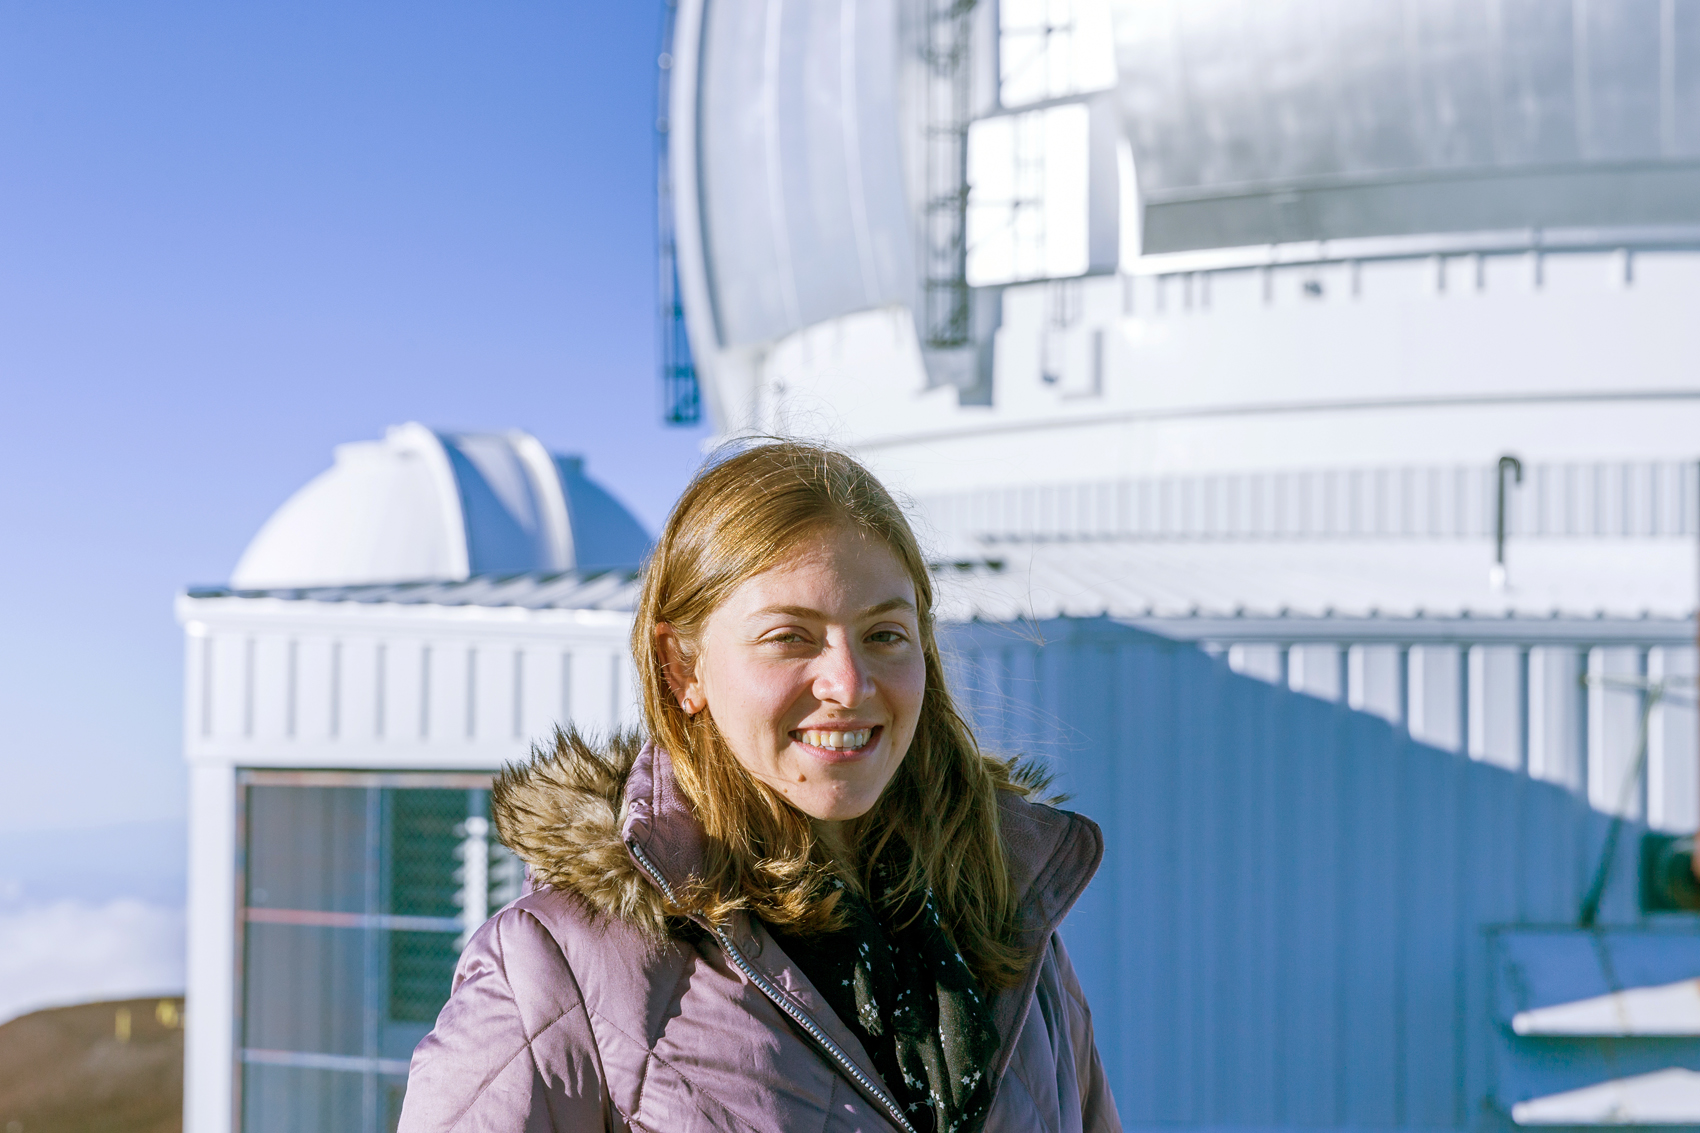 Astronomer Rosemary Pike at the Gemini Observatory on Maunakea in Hawaii. The Gemini telescope dome is behind Pike, and the Canada-France-Hawaii Telescope is the smaller dome to the lower left.